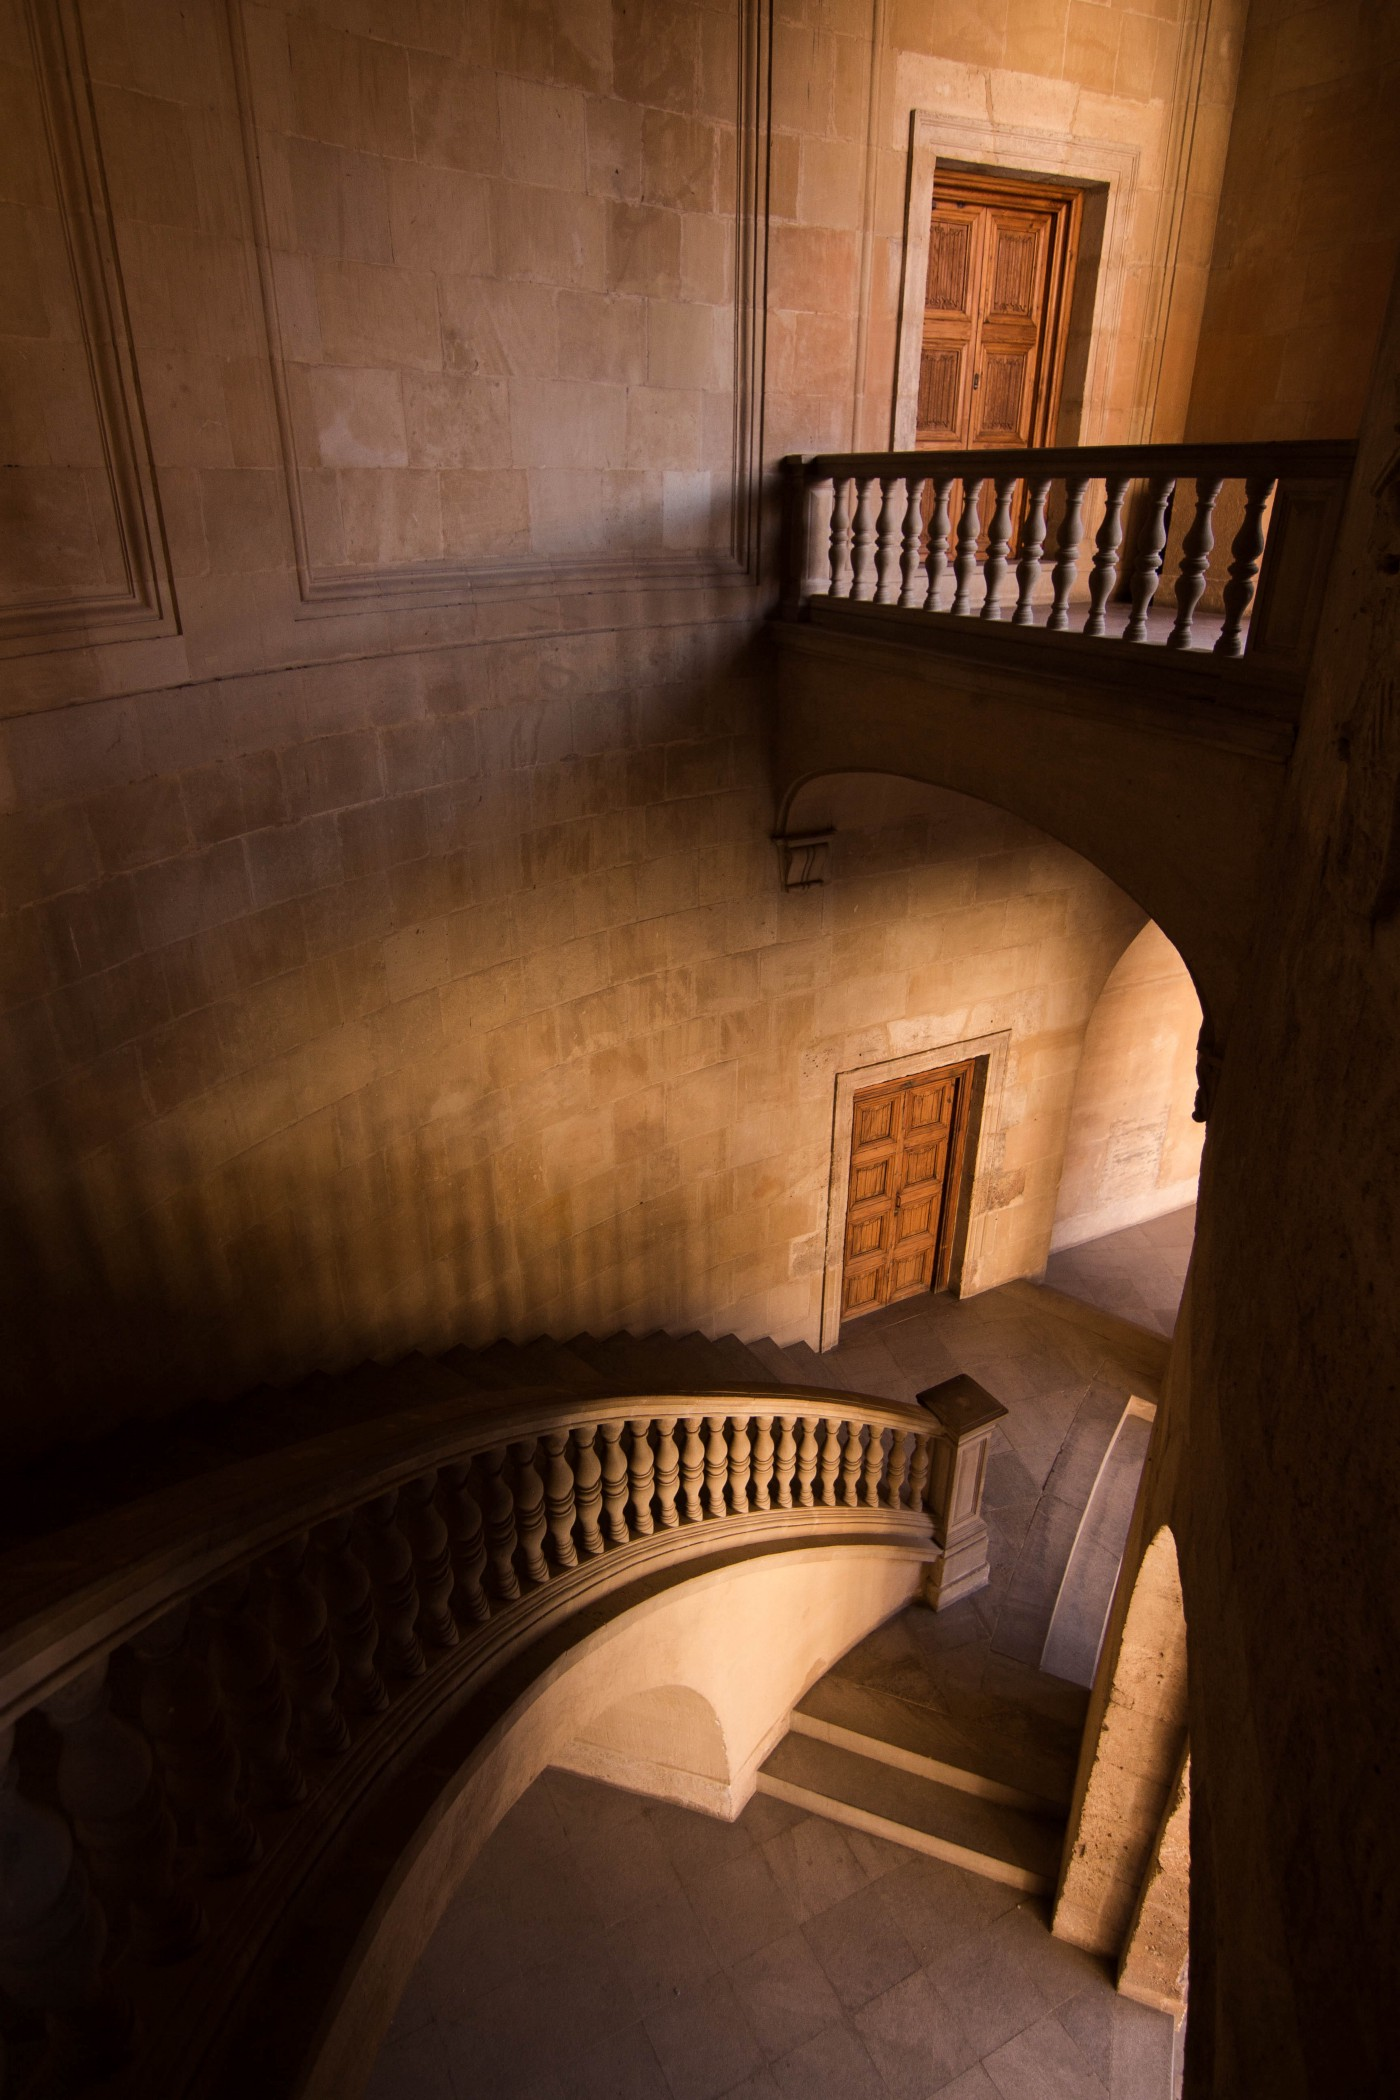 Doors on two floors with a staircase leading up to them.